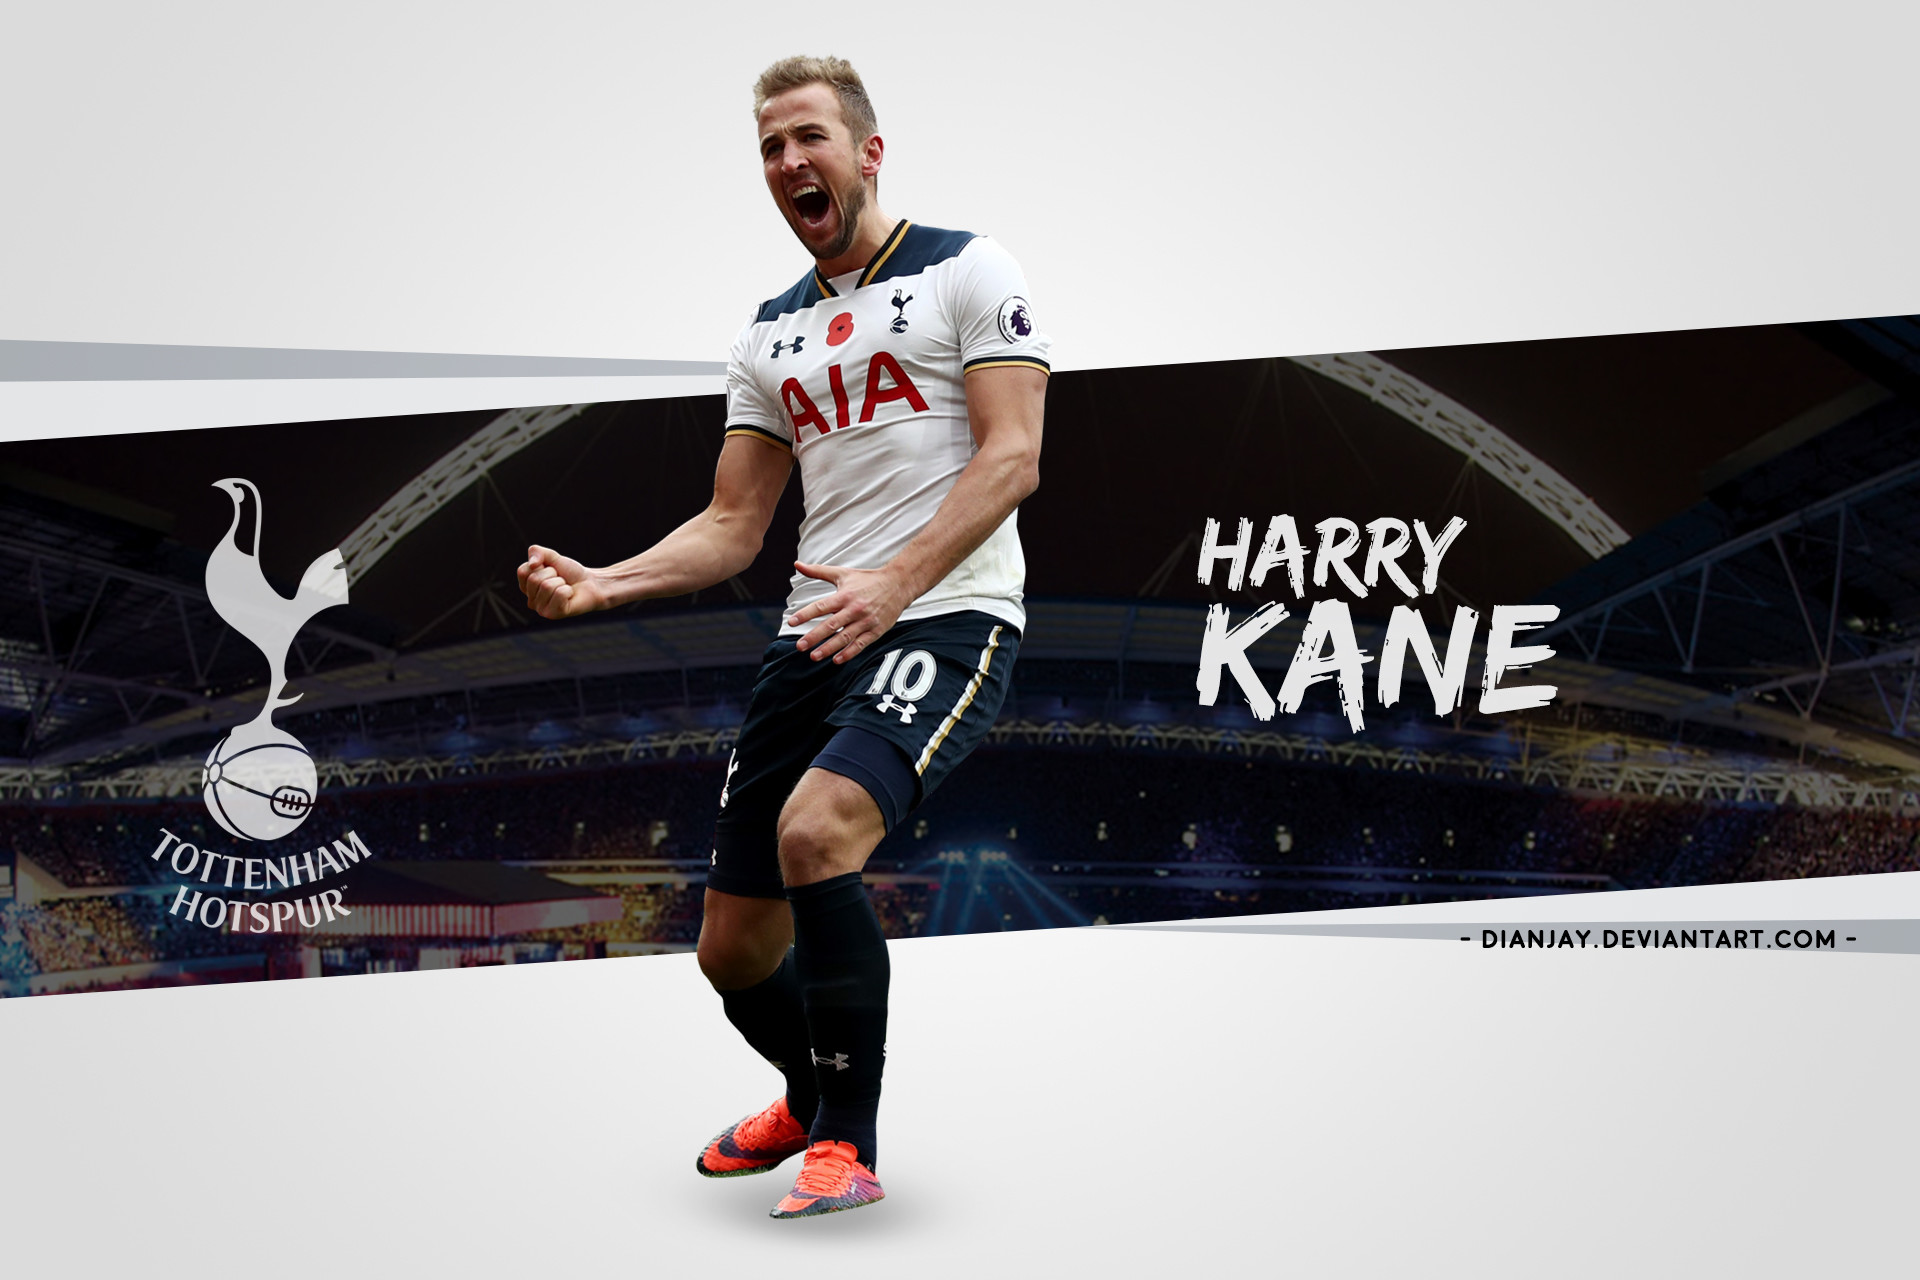 Kane 2018 Wallpapers (72+ Images